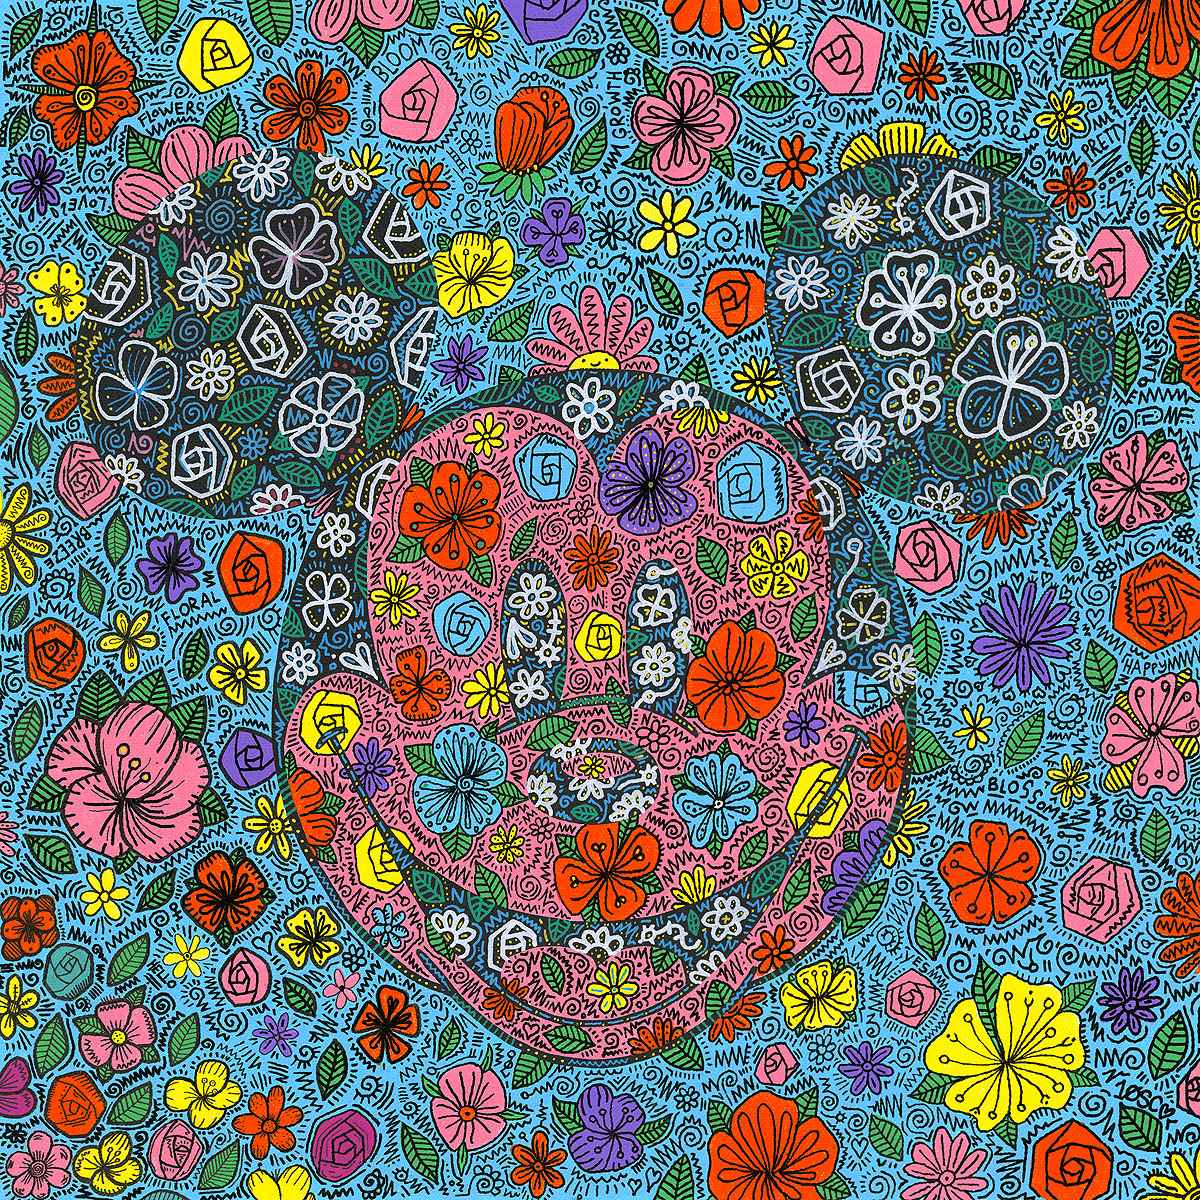 City OF Flowers by  Tennessee Loveless - Masterpiece Online